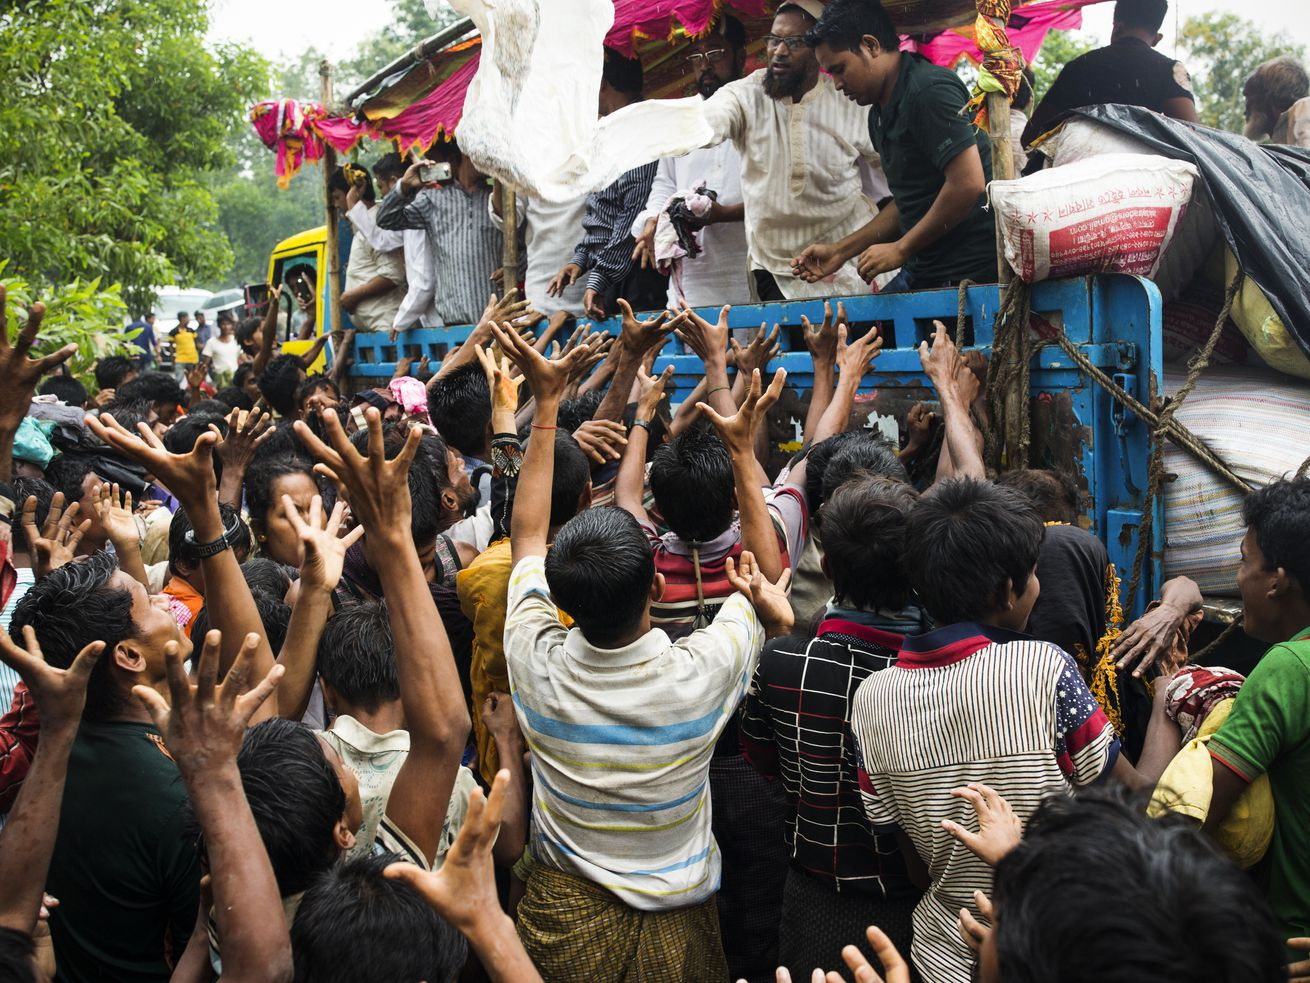 Refugees receive social relief in Bangladesh